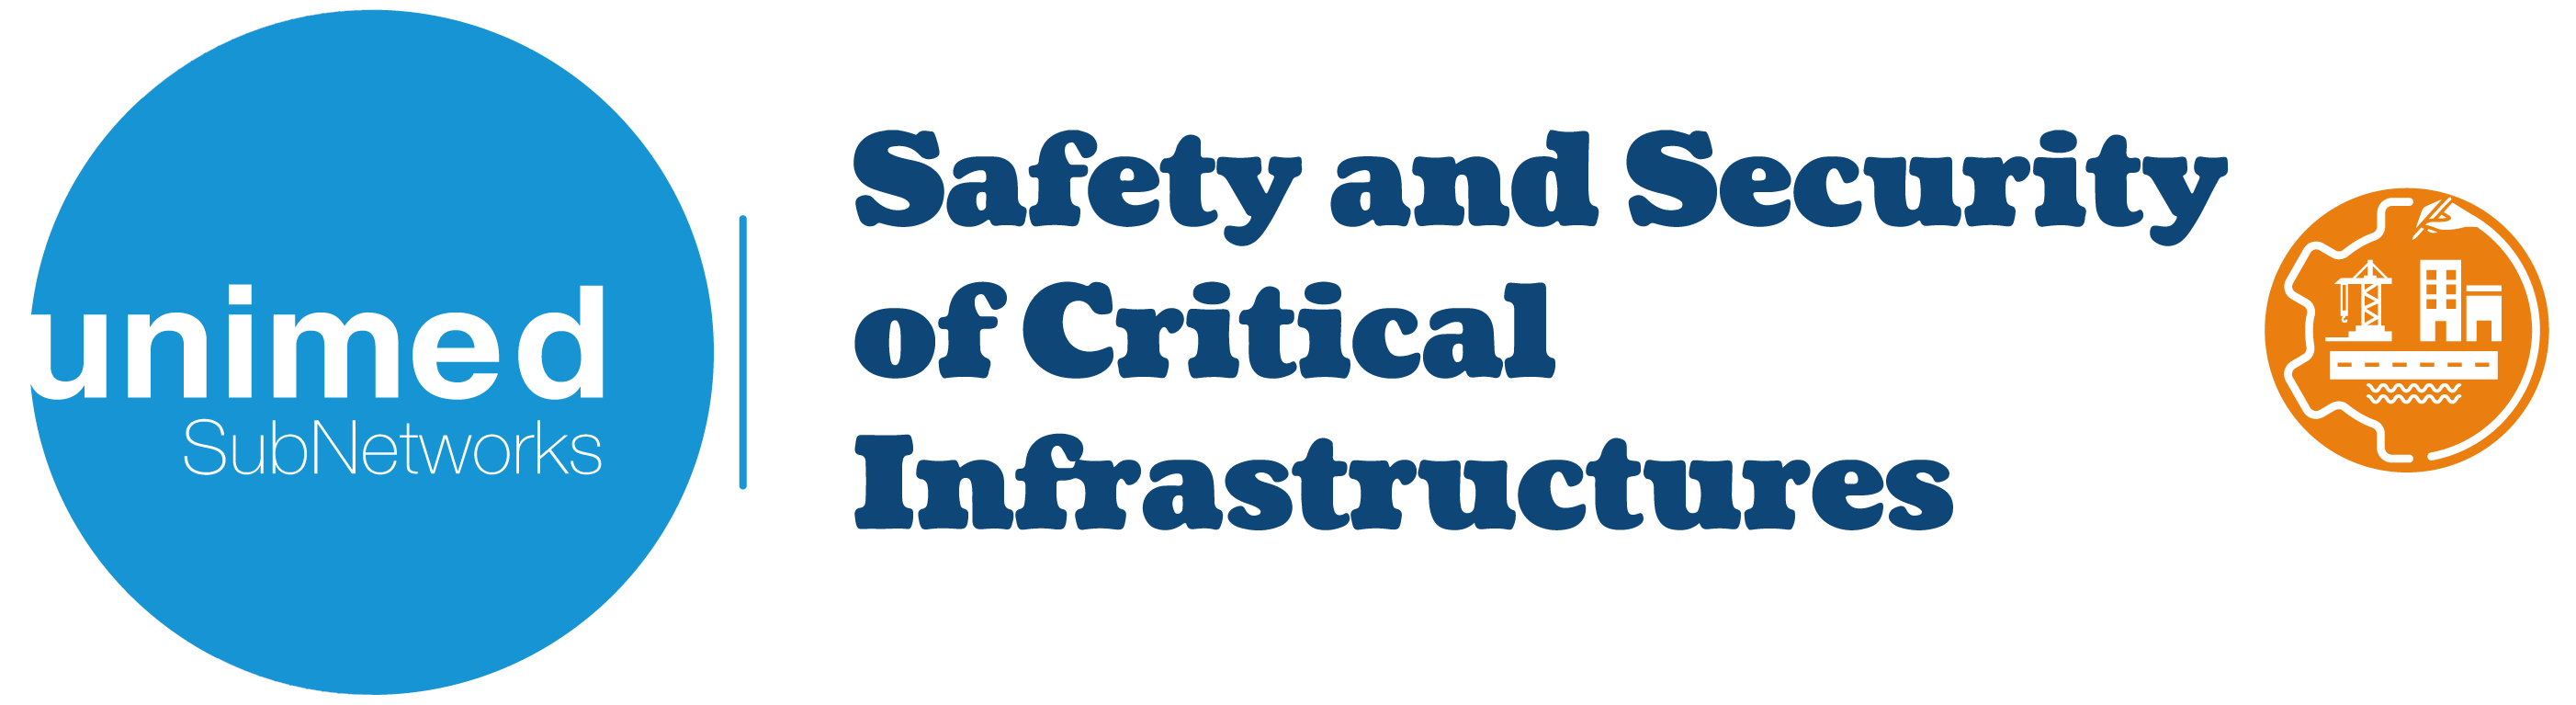 Subnetwork_Safety_Infrastructures_COLOR